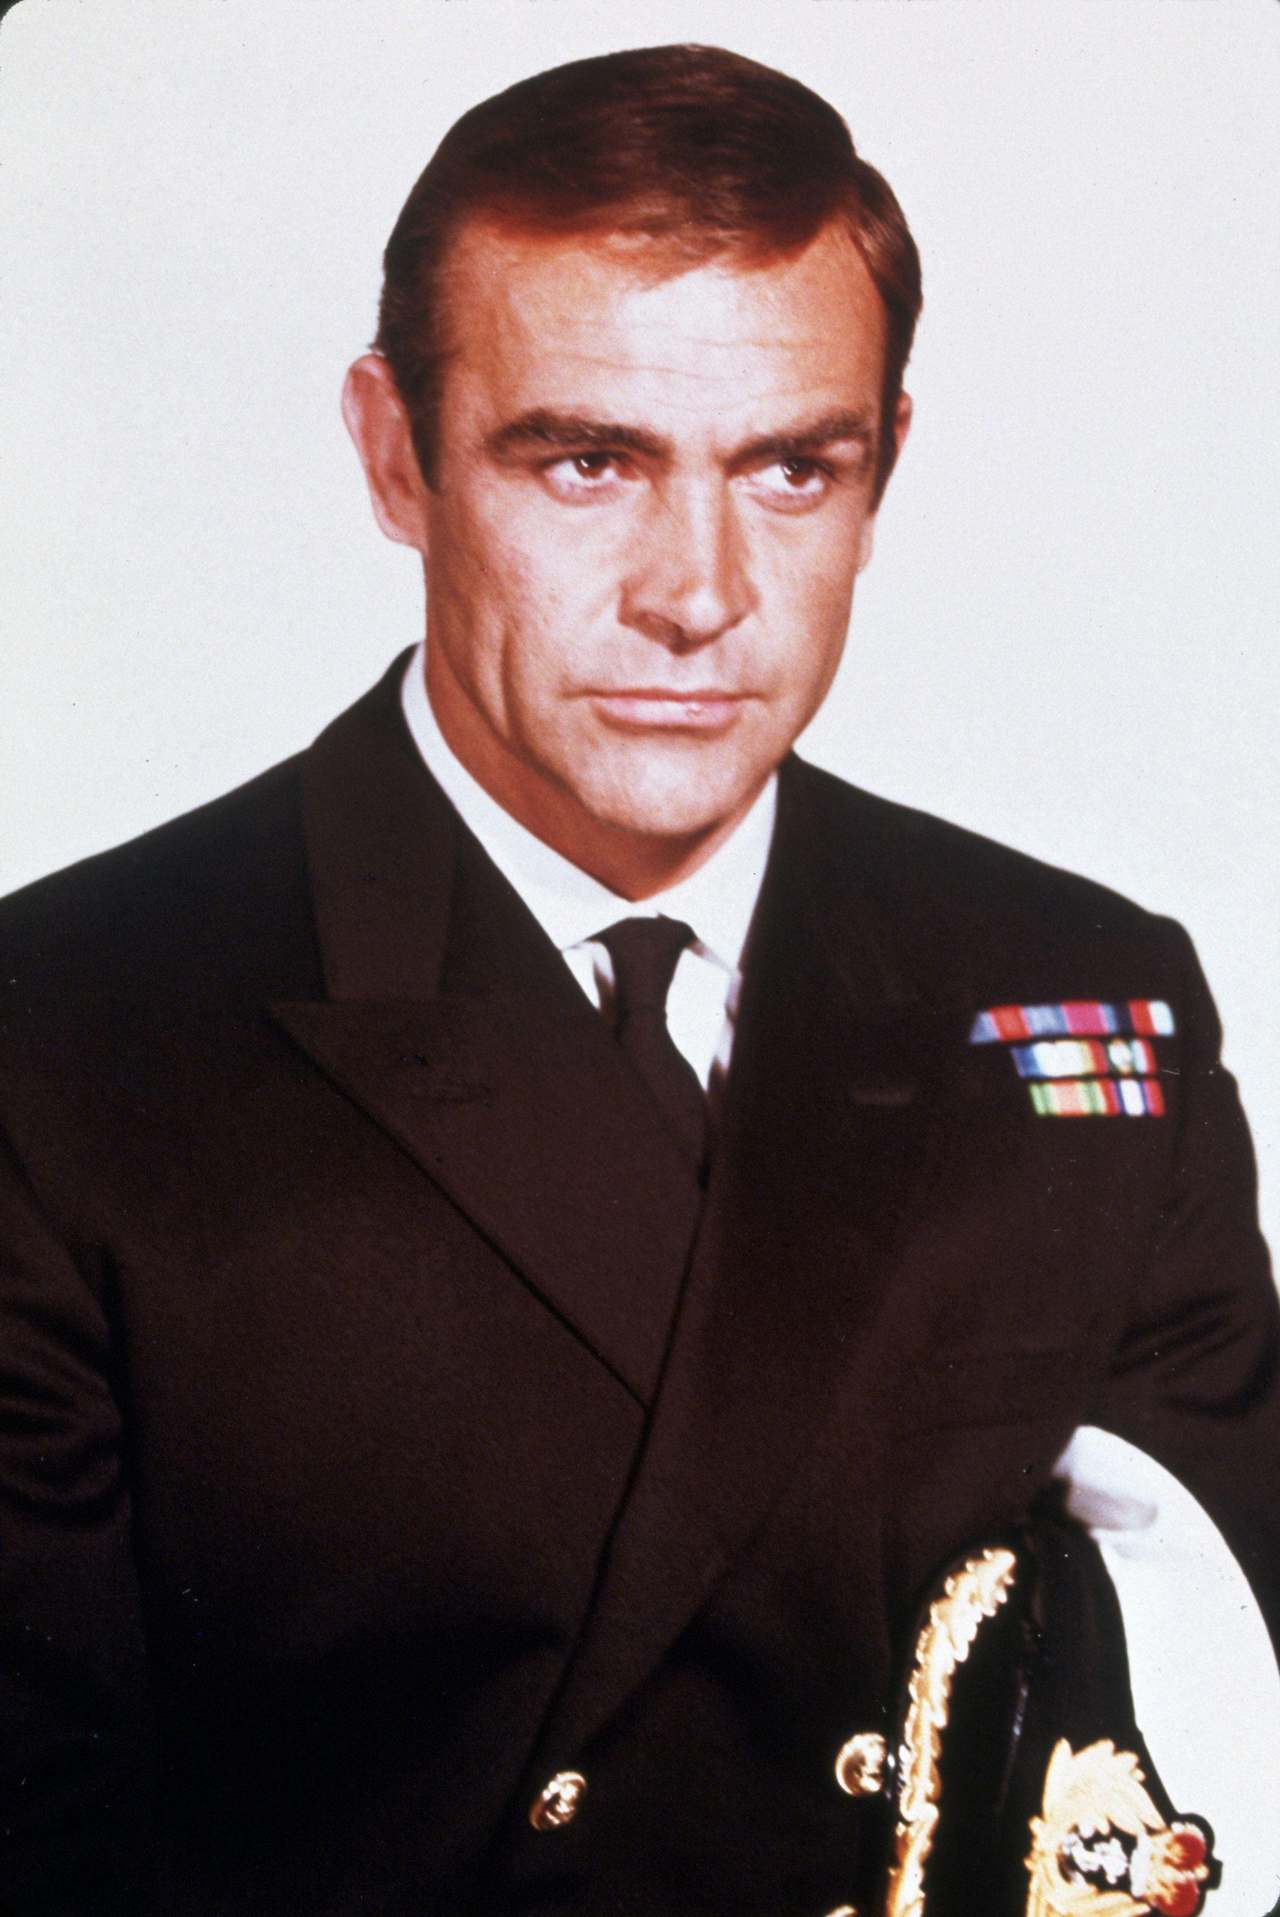 1967, Film Title: YOU ONLY LIVE TWICE, Director: LEWIS GILBERT, Pictured: SEAN CONNERY, SEAN ASJAMES BOND CONNERY, LEWIS GILBERT. (Credit Image: SNAP)